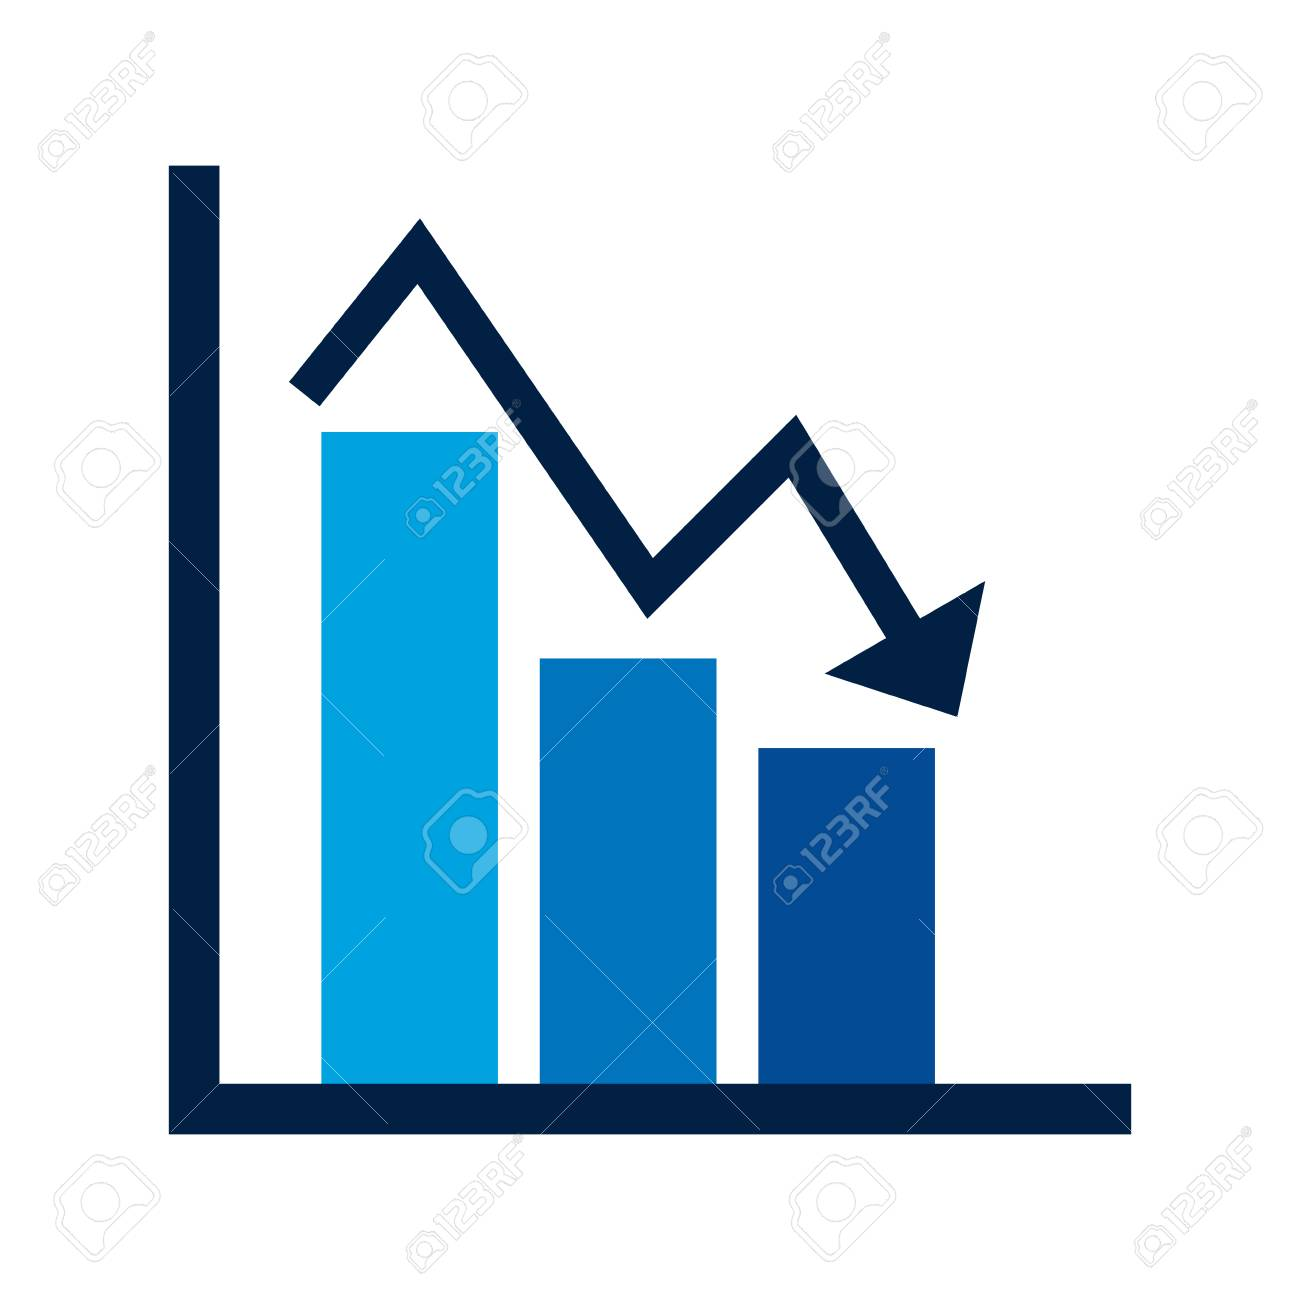 Business financial bar graph chart diagram crisis problem vector business financial bar graph chart diagram crisis problem vector illustration stock vector 97884311 ccuart Images